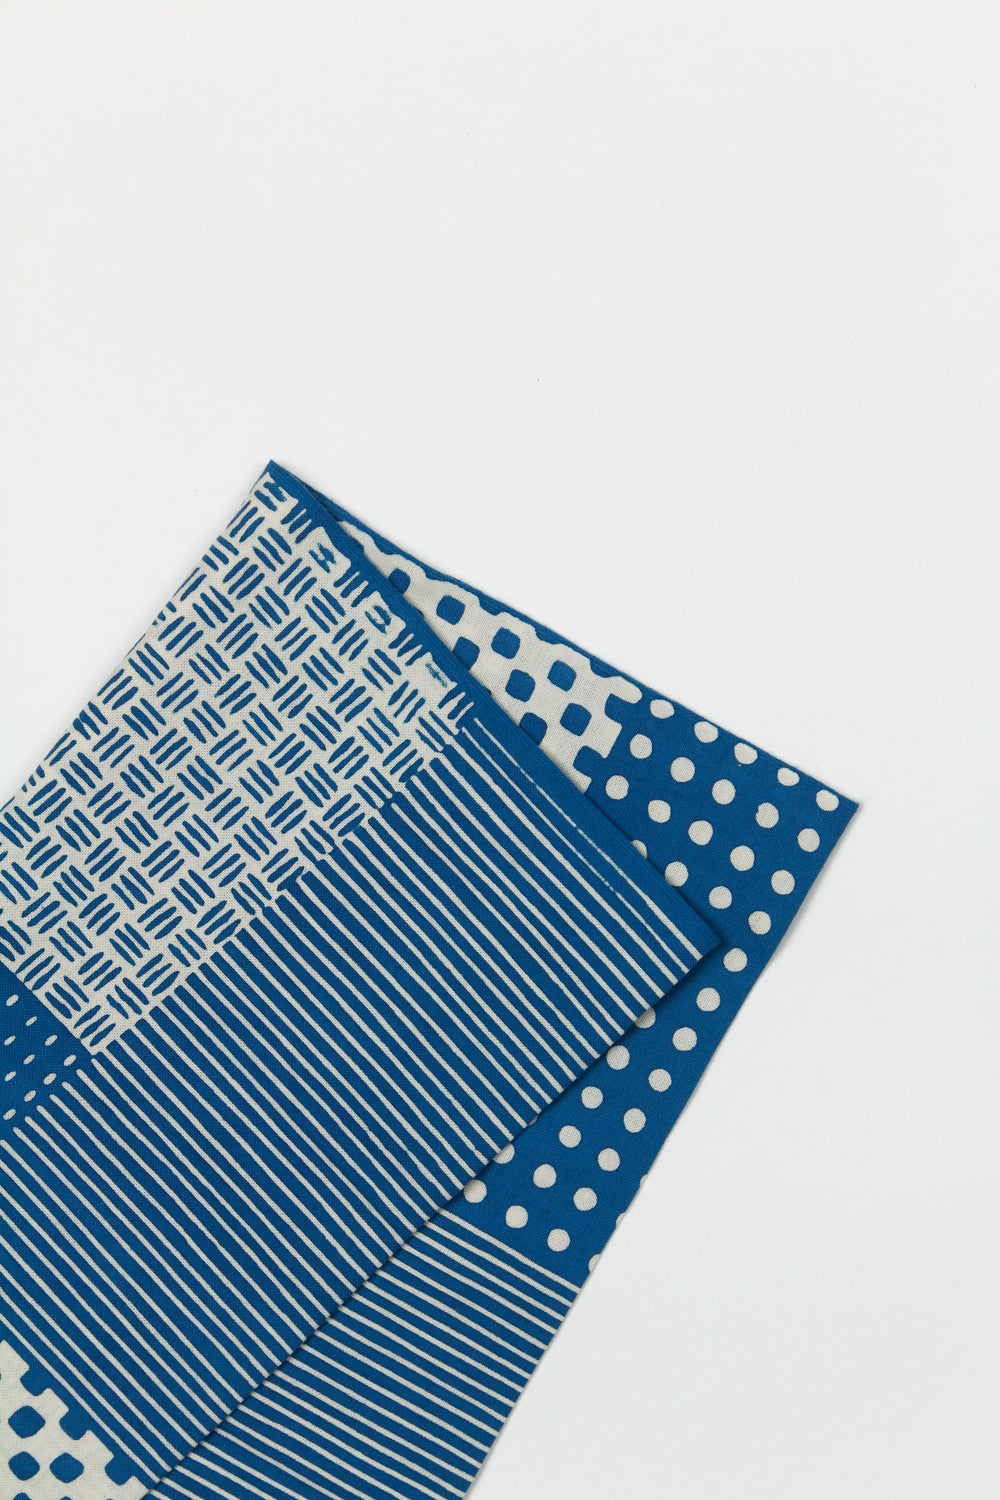 Tenugui Patchwork Blue